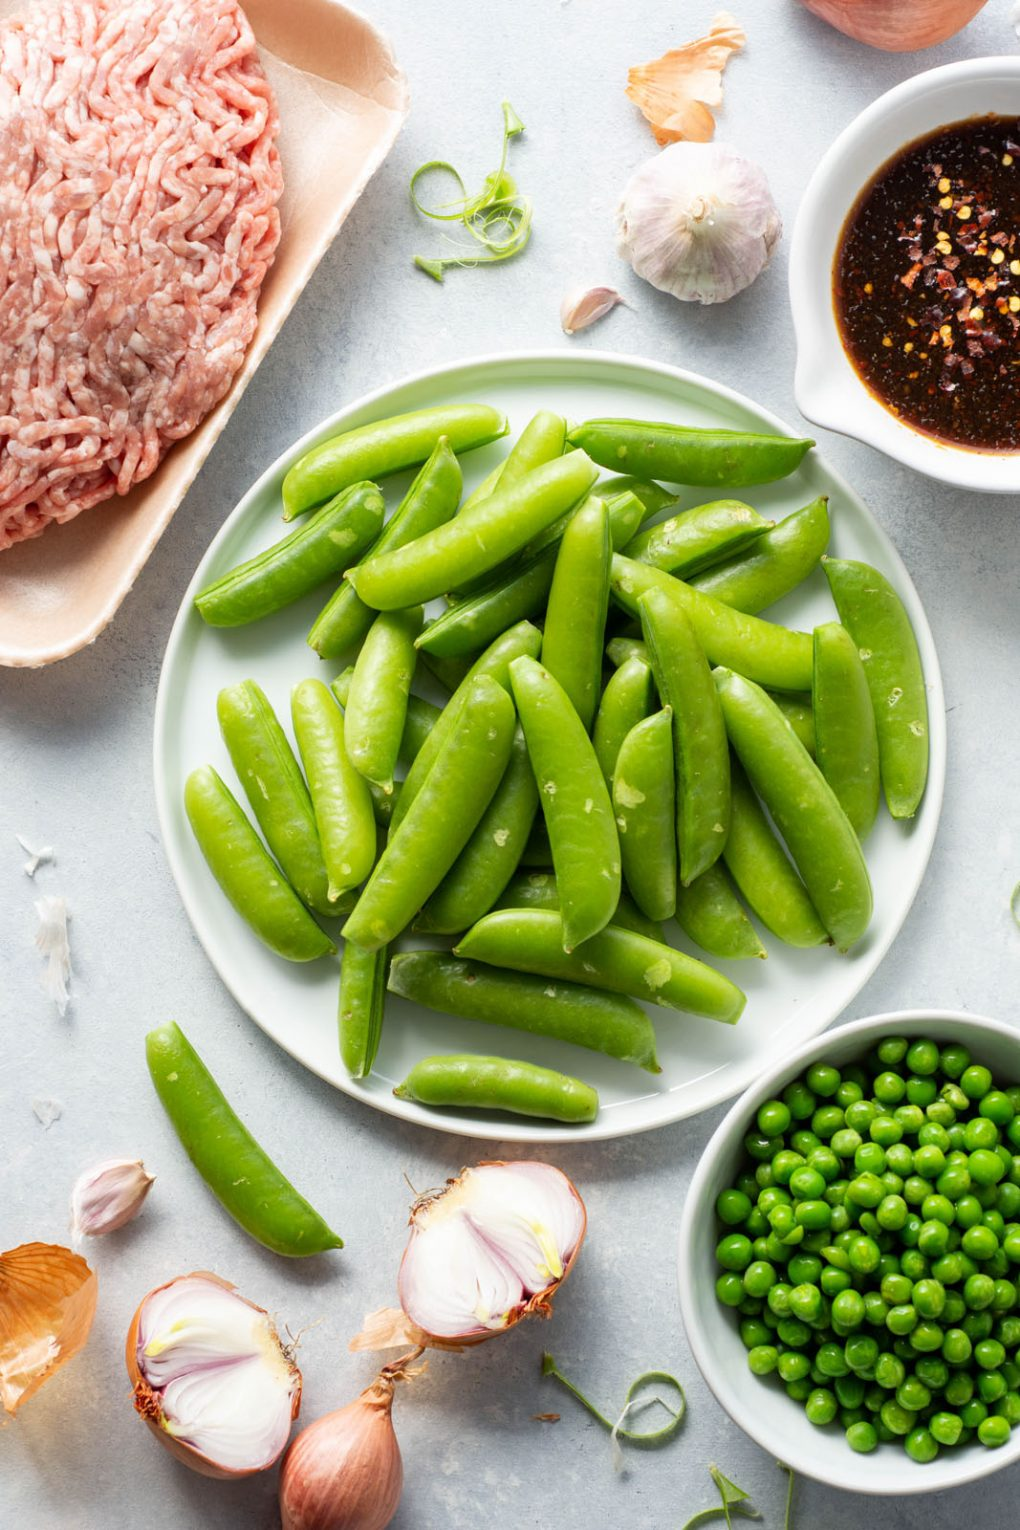 Overhead shot of all the ingredients needed to make a super easy 30 minute crispy ground pork stir fry. There's a large round white plate of peas in the center, surrounded by a little plate with green peas, some shallots cut in half, garlic cloves, a small bowl of chili oil, and an opened package of ground pork.